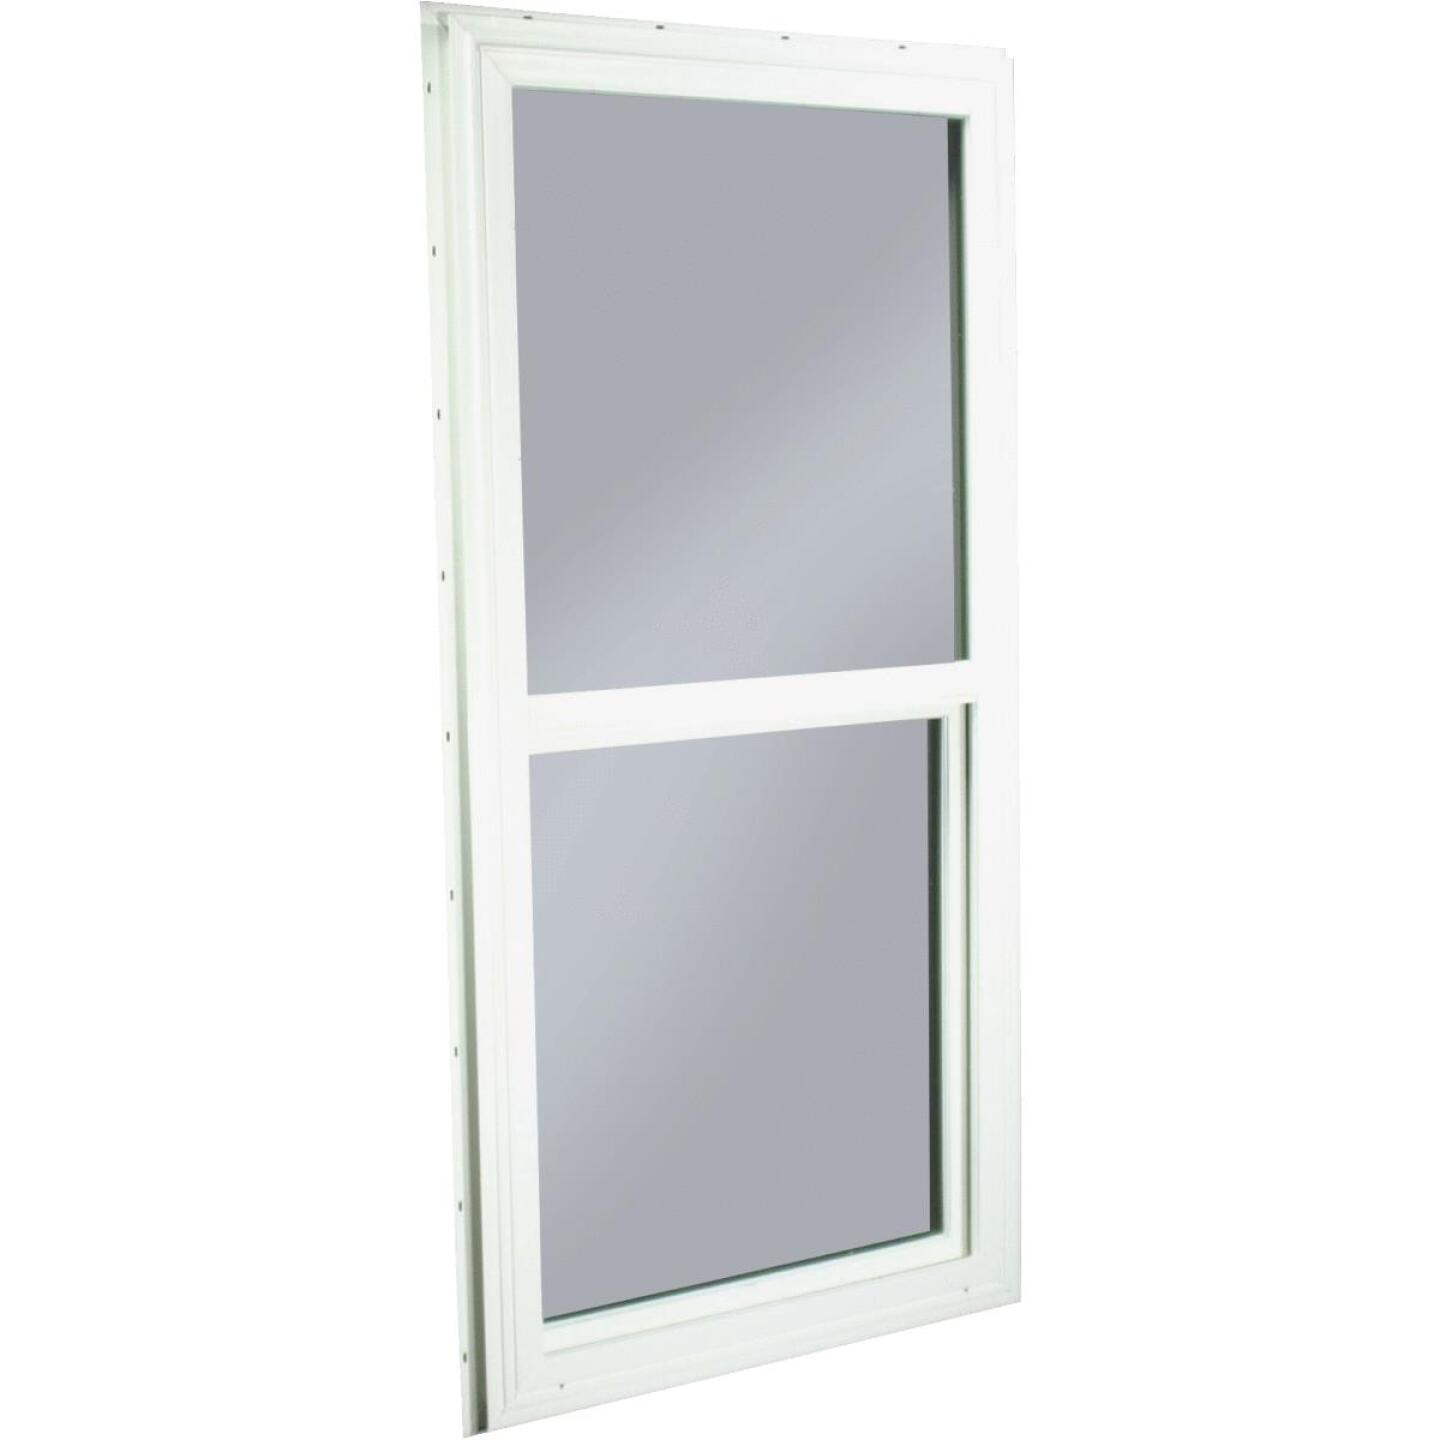 Northview 23-1/2 In. W. x 47-1/2 In. H. White PVC Traditional Single Glazed Single Hung Window Image 1